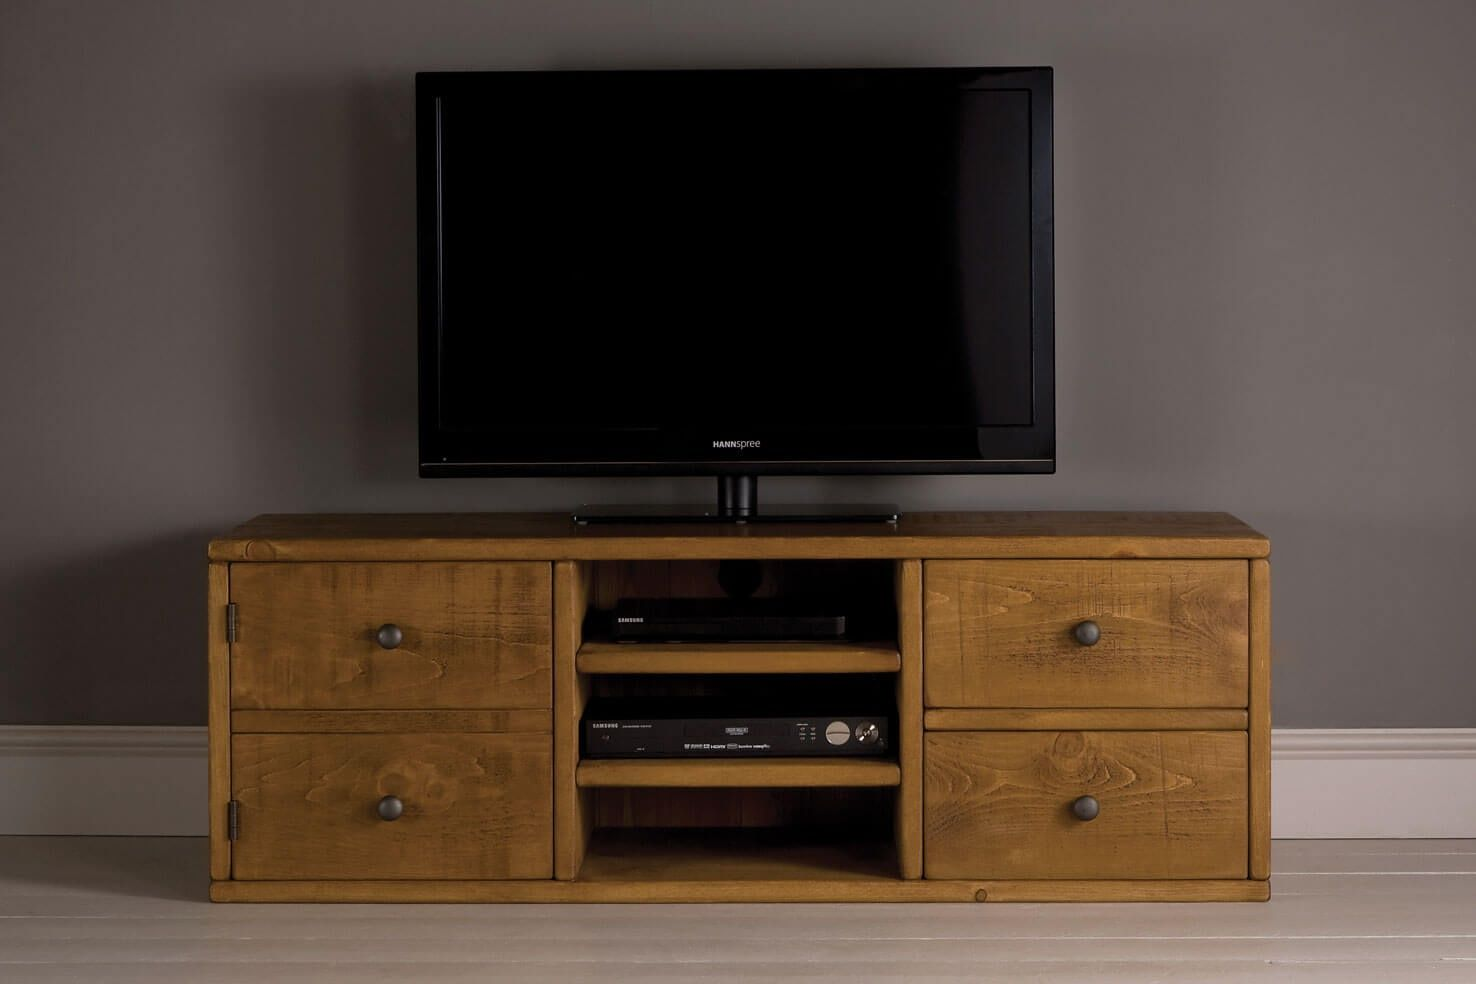 Plank cubbyhole tv cabinet handcrafted by indigo furniture lounge